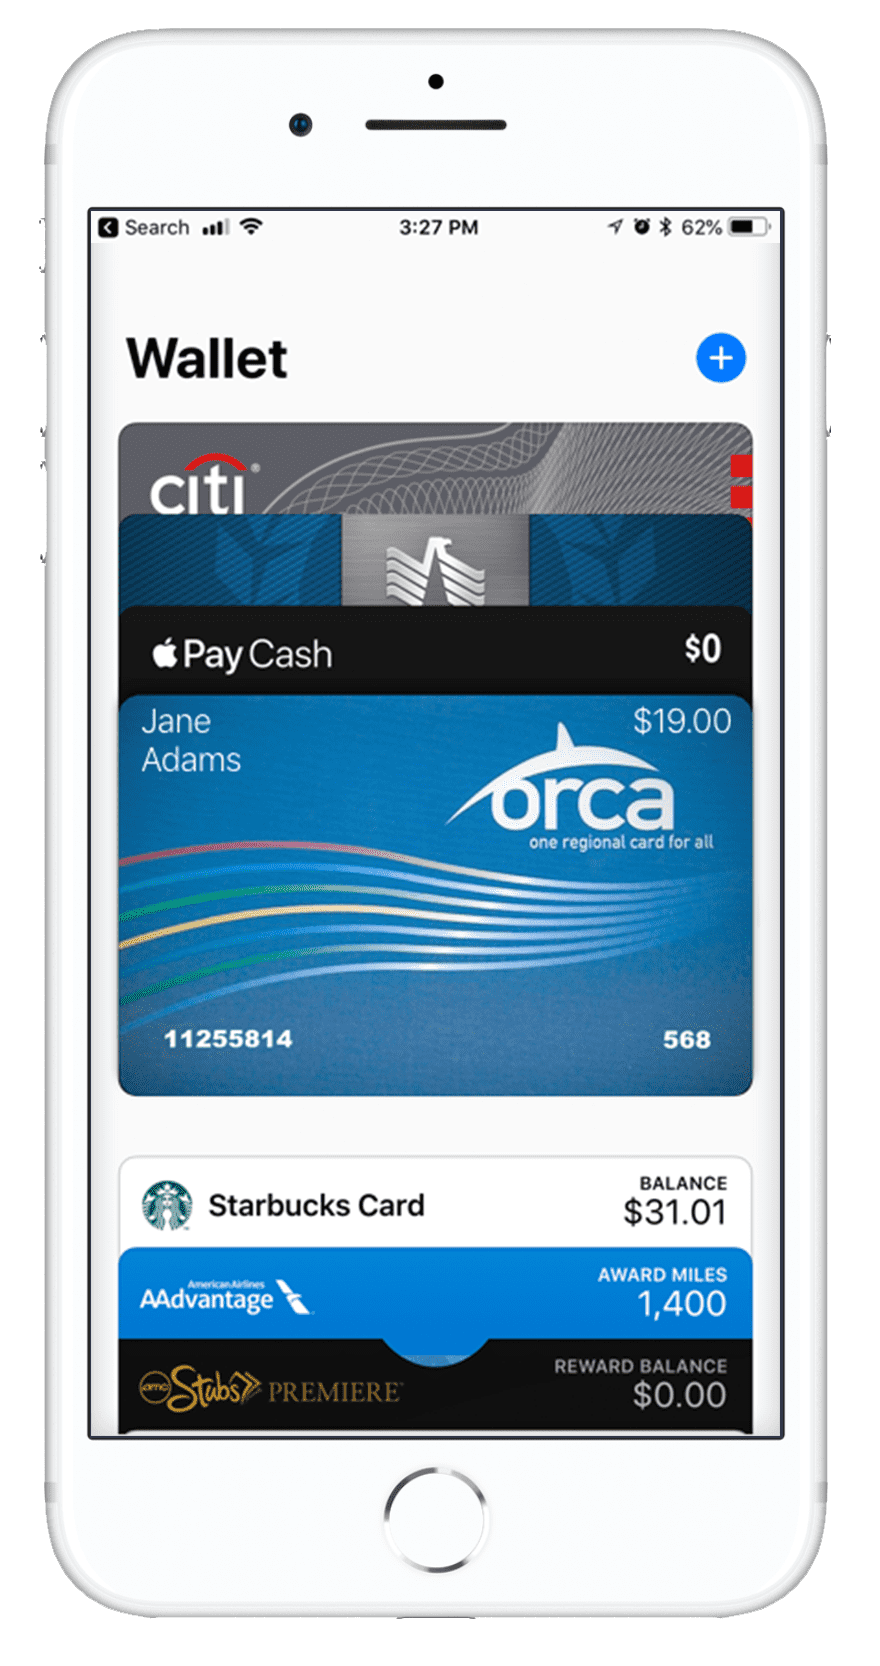 Orca Card 2 added to Apple Wallet